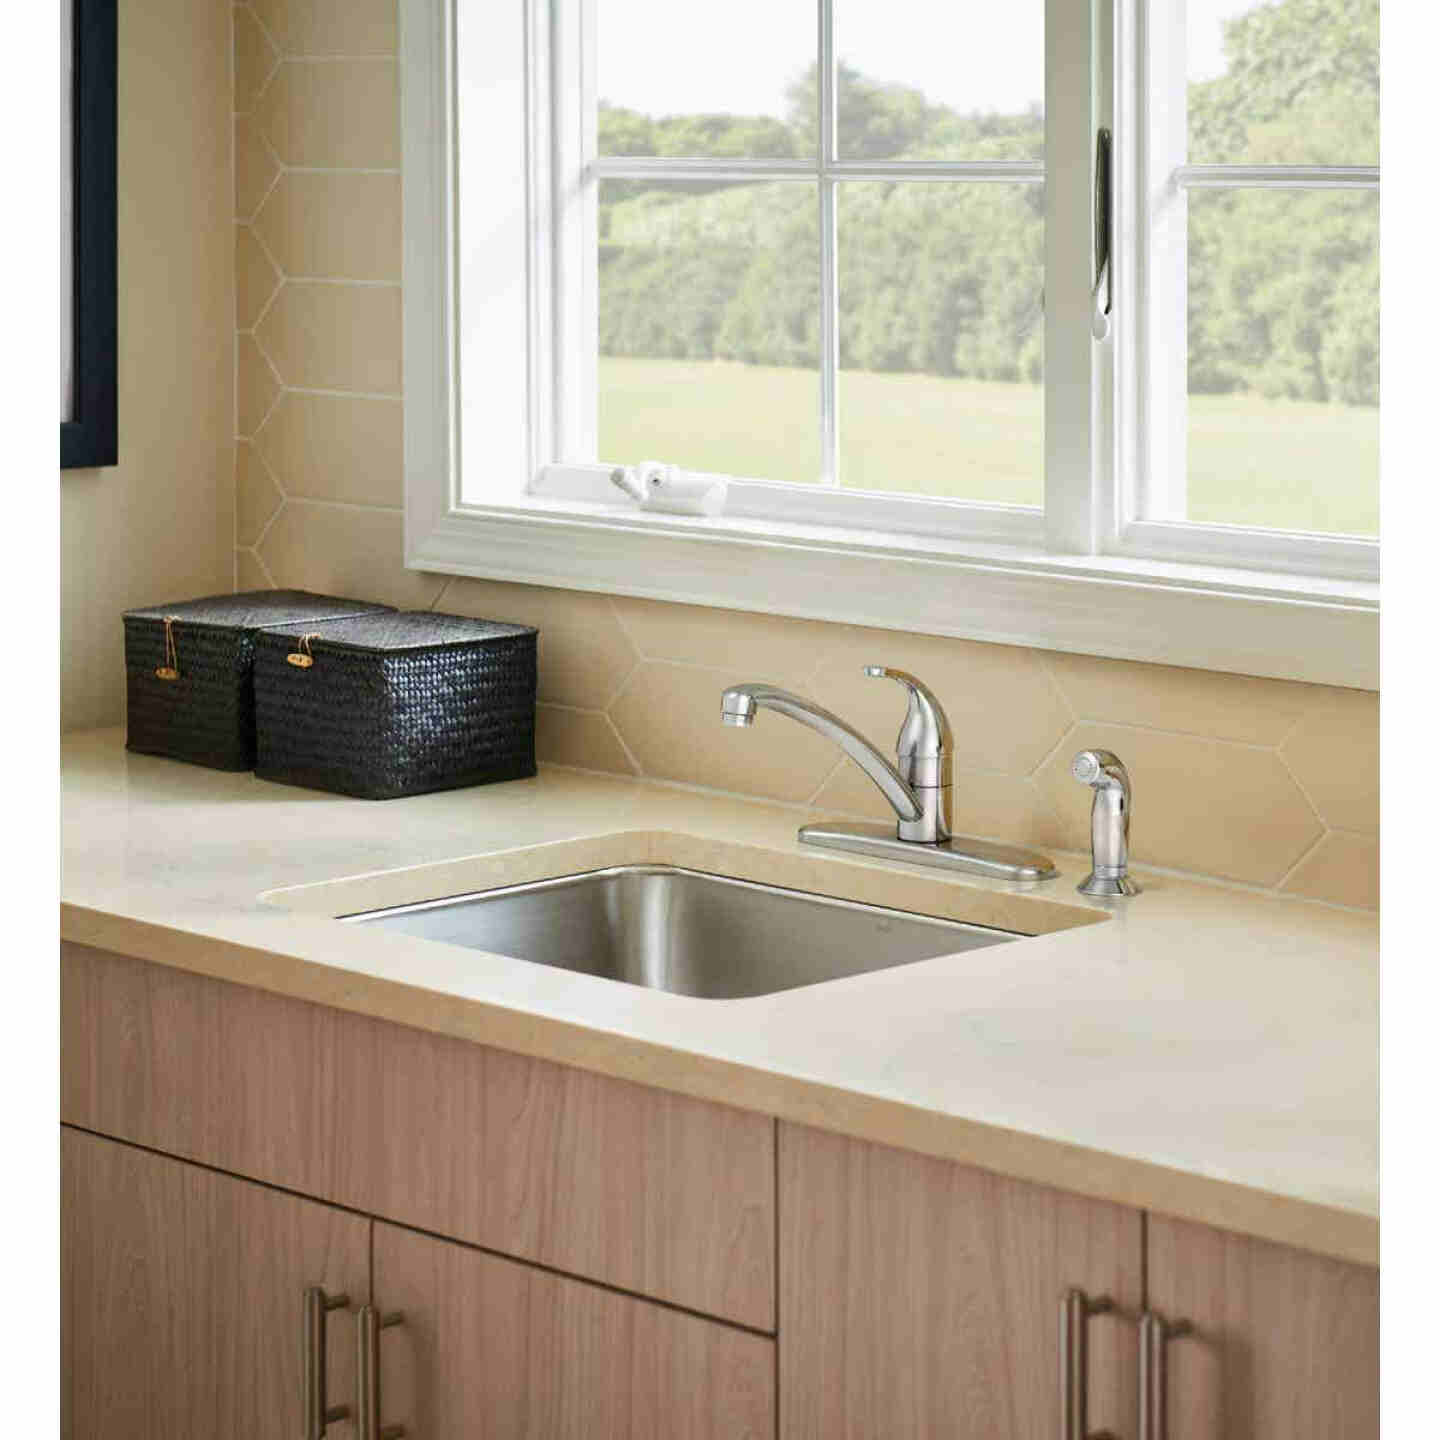 Moen Adler Single Handle Lever Kitchen Faucet with Side Spray, Chrome Image 2